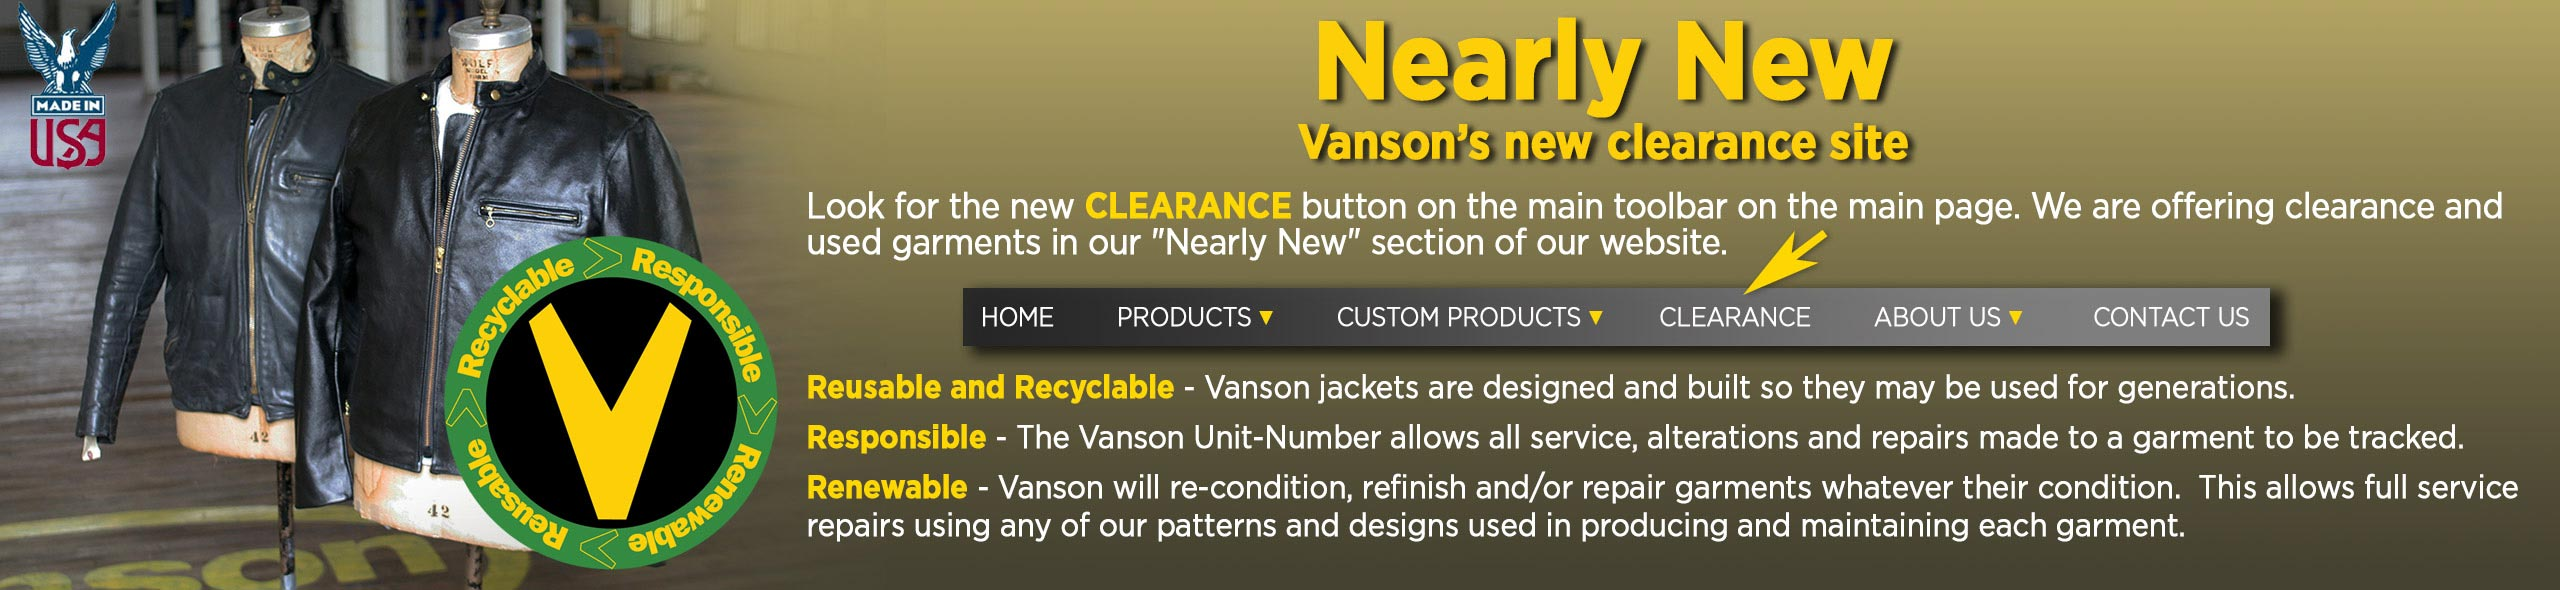 Nearly New, Vanson's new clearance site